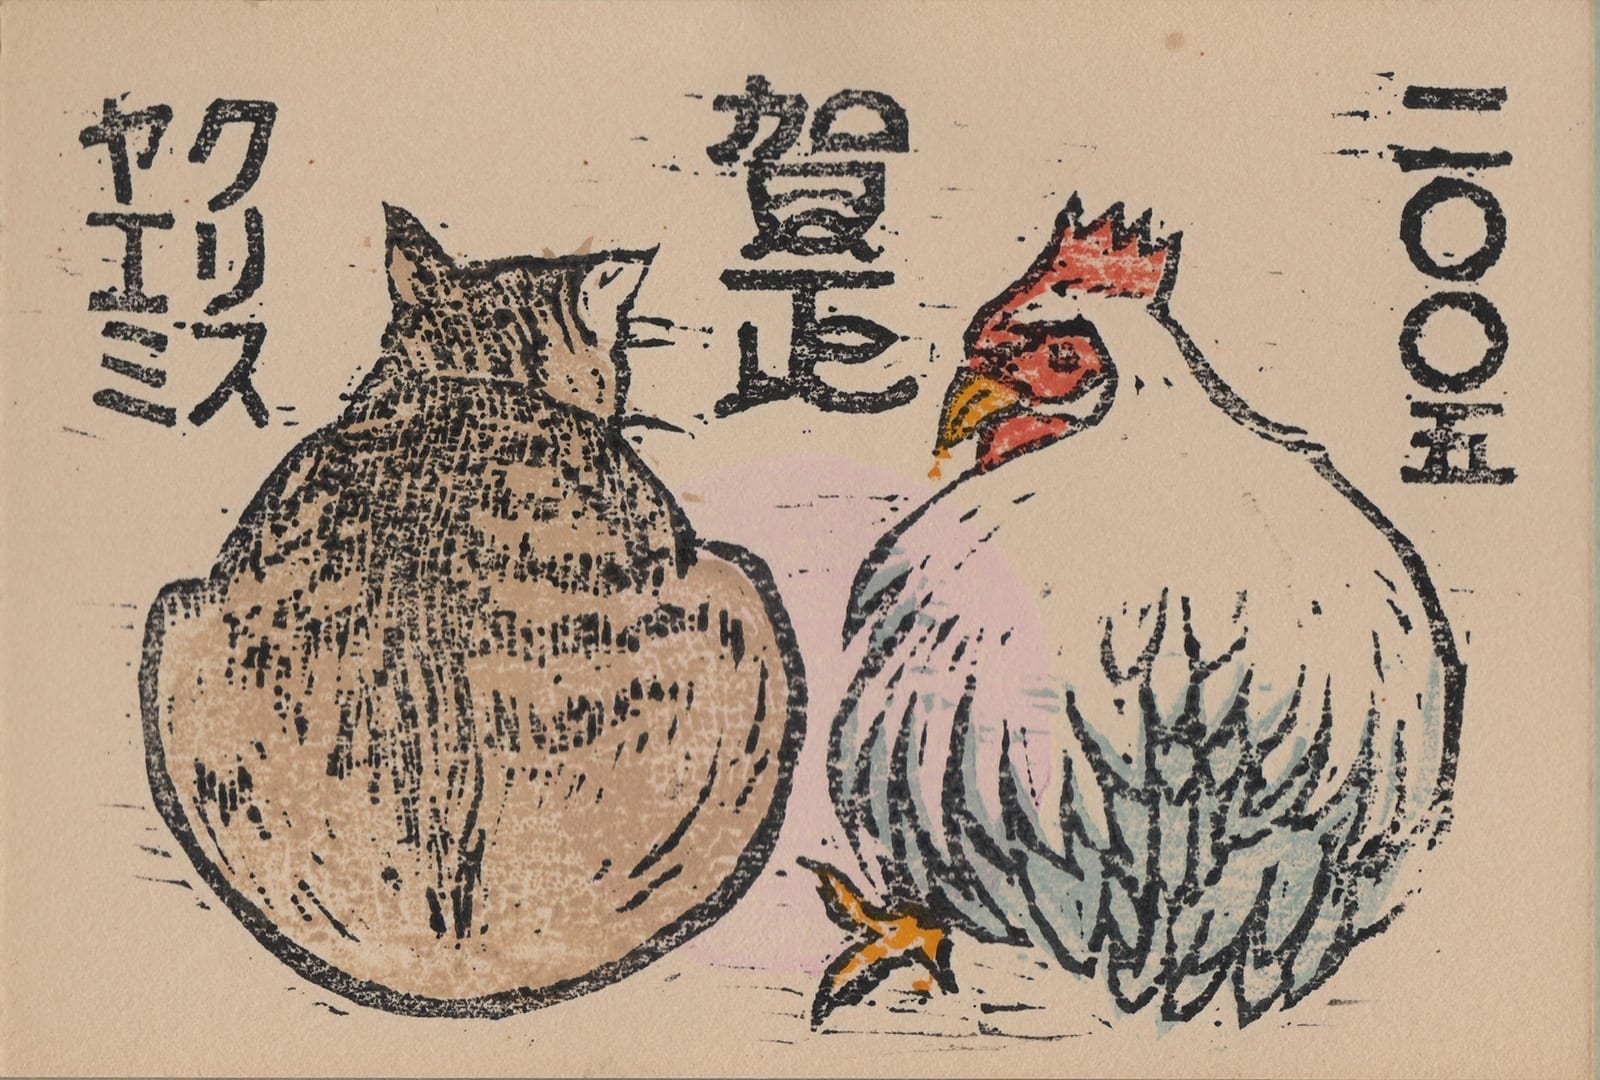 2005 (Heisei 17) New Year's Card: Year of the Rooster